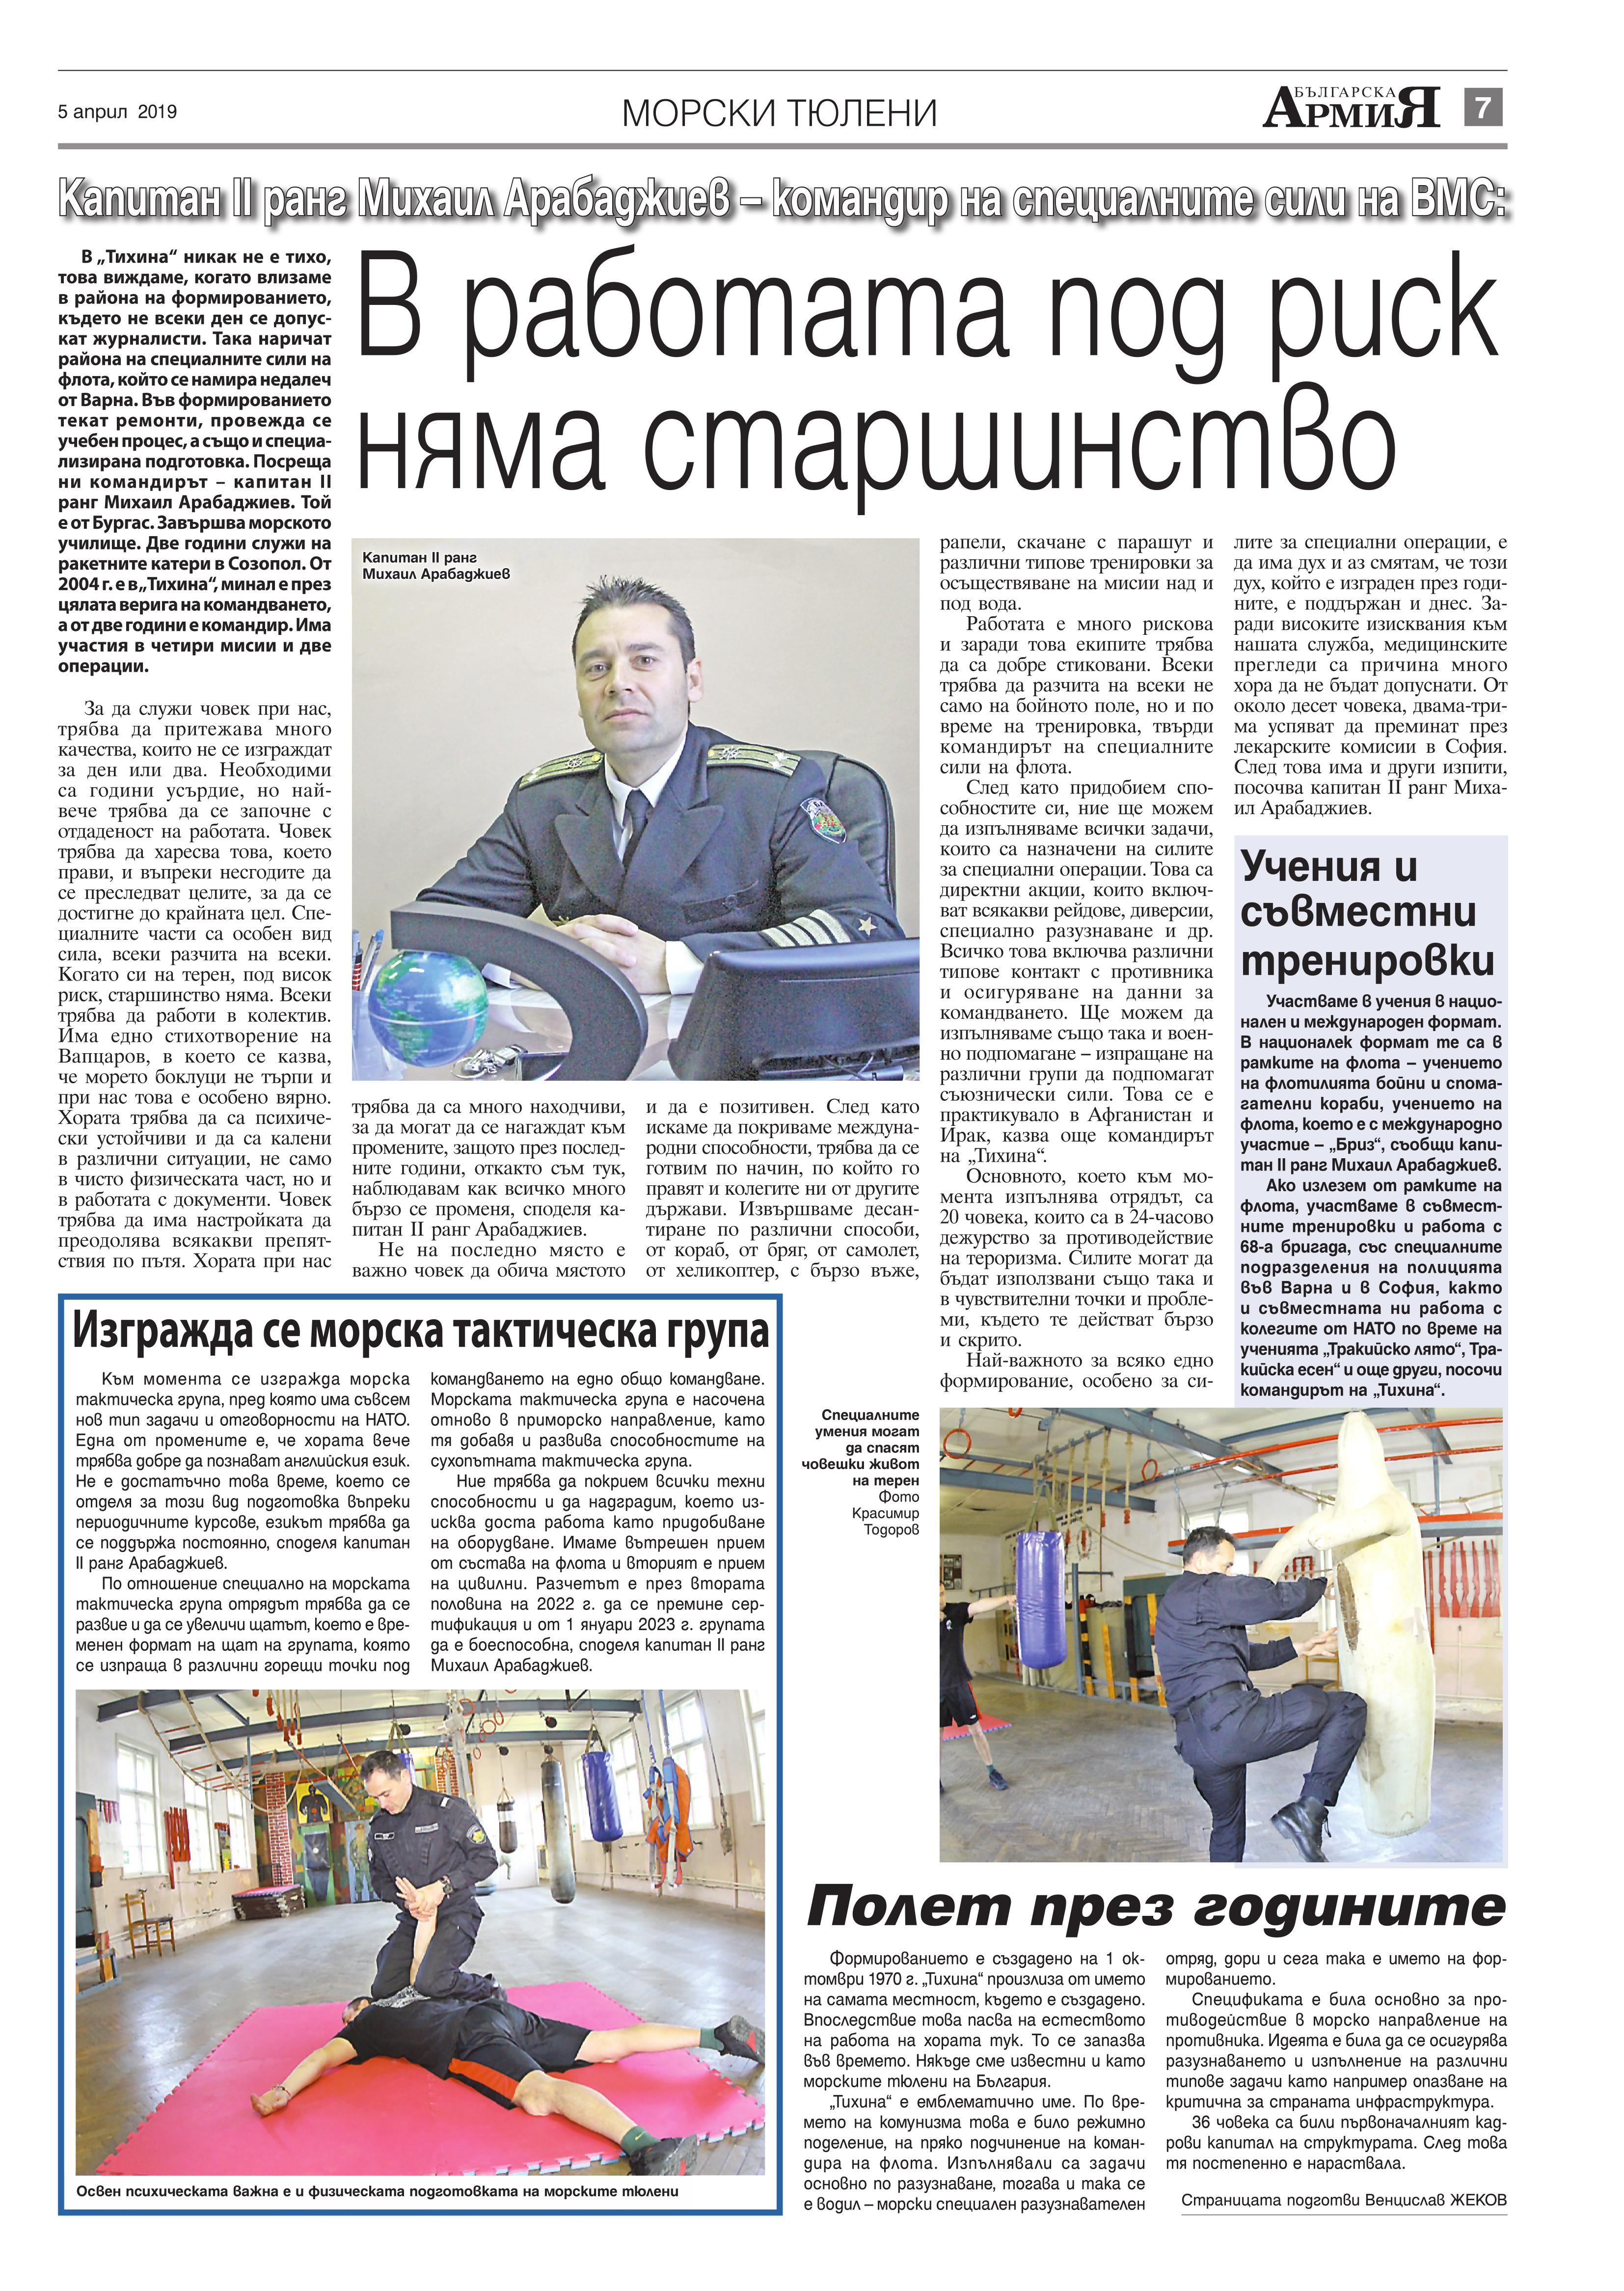 https://armymedia.bg/wp-content/uploads/2015/06/07.page1_-87.jpg